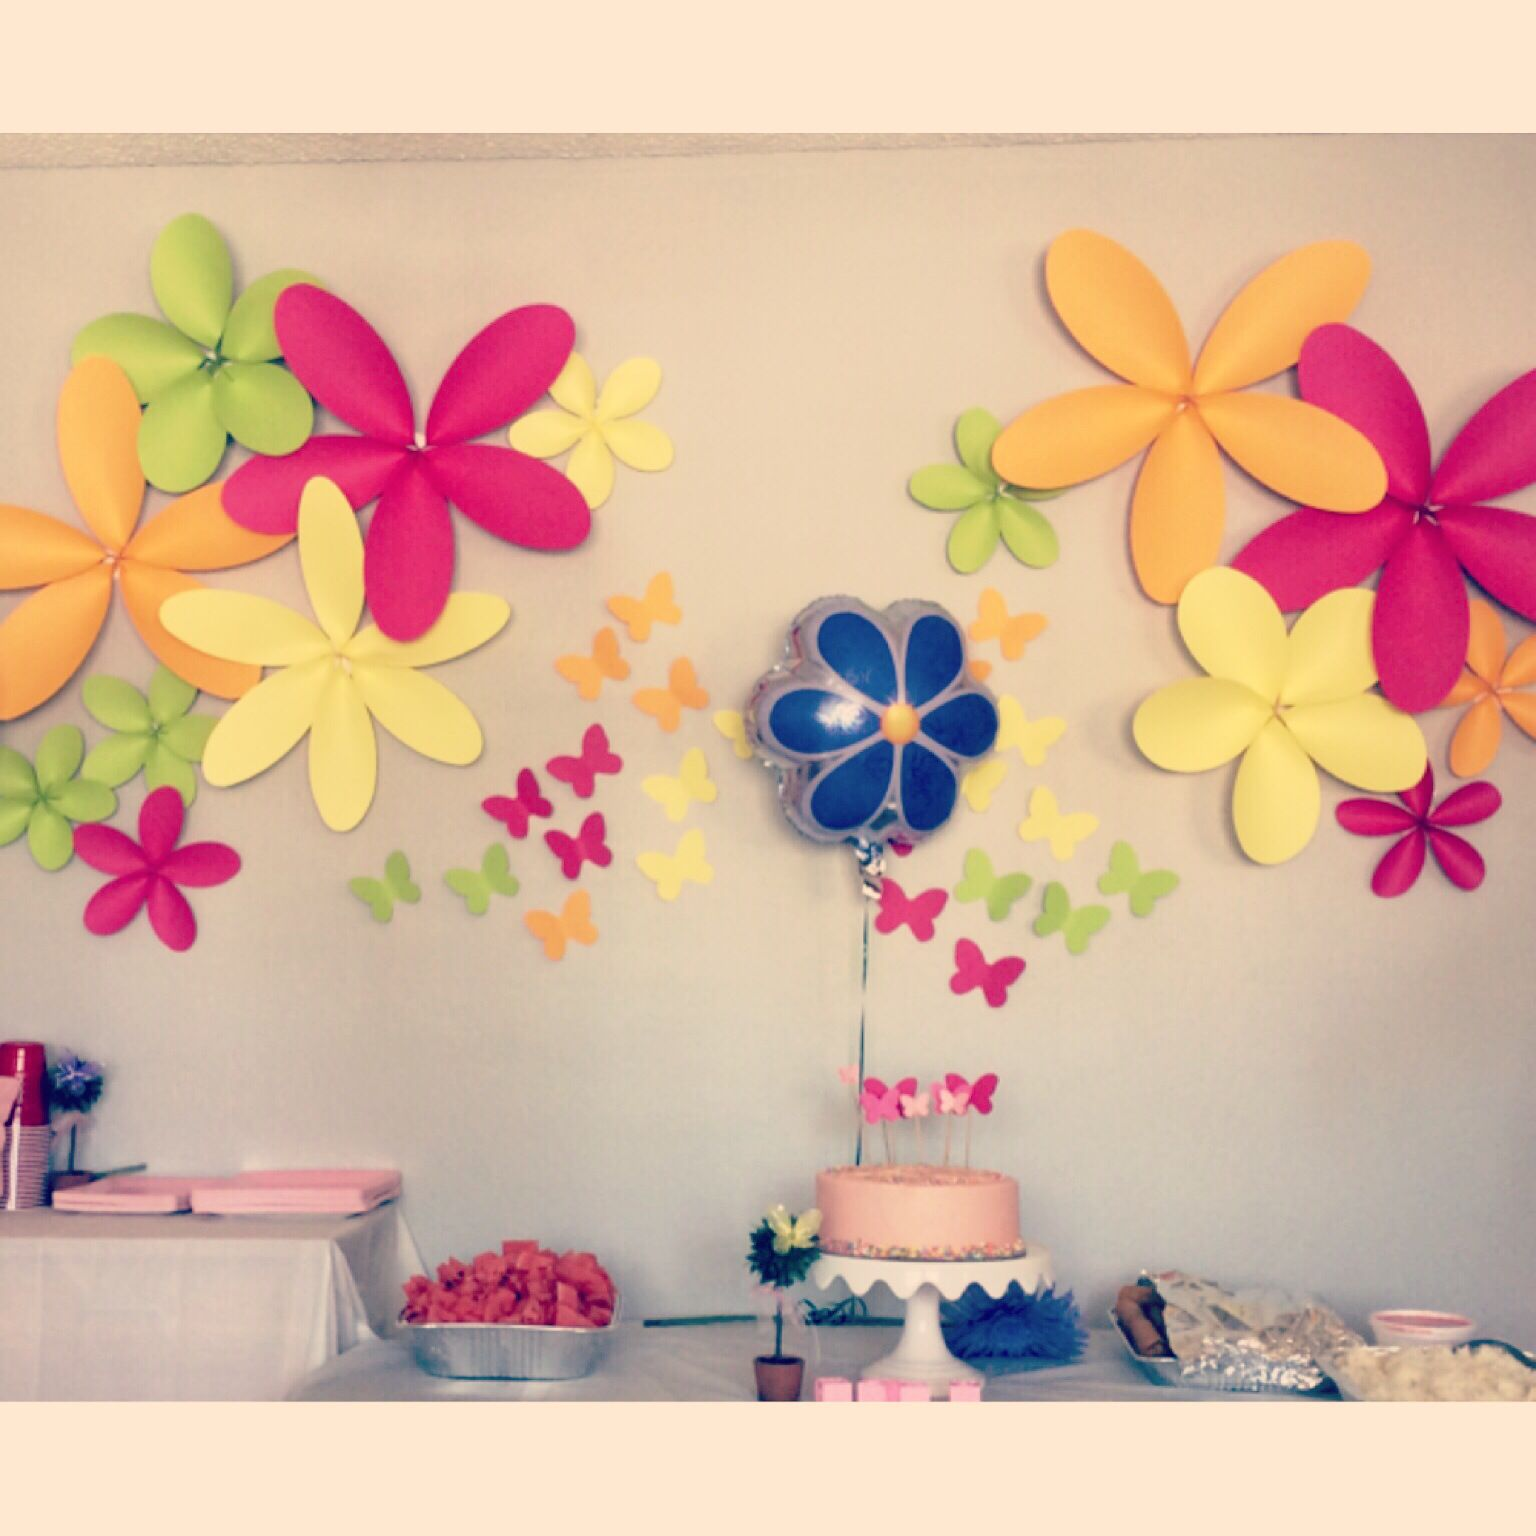 Giant Paper Flowers And Butterflies For Baby Shower Wall Backdrop